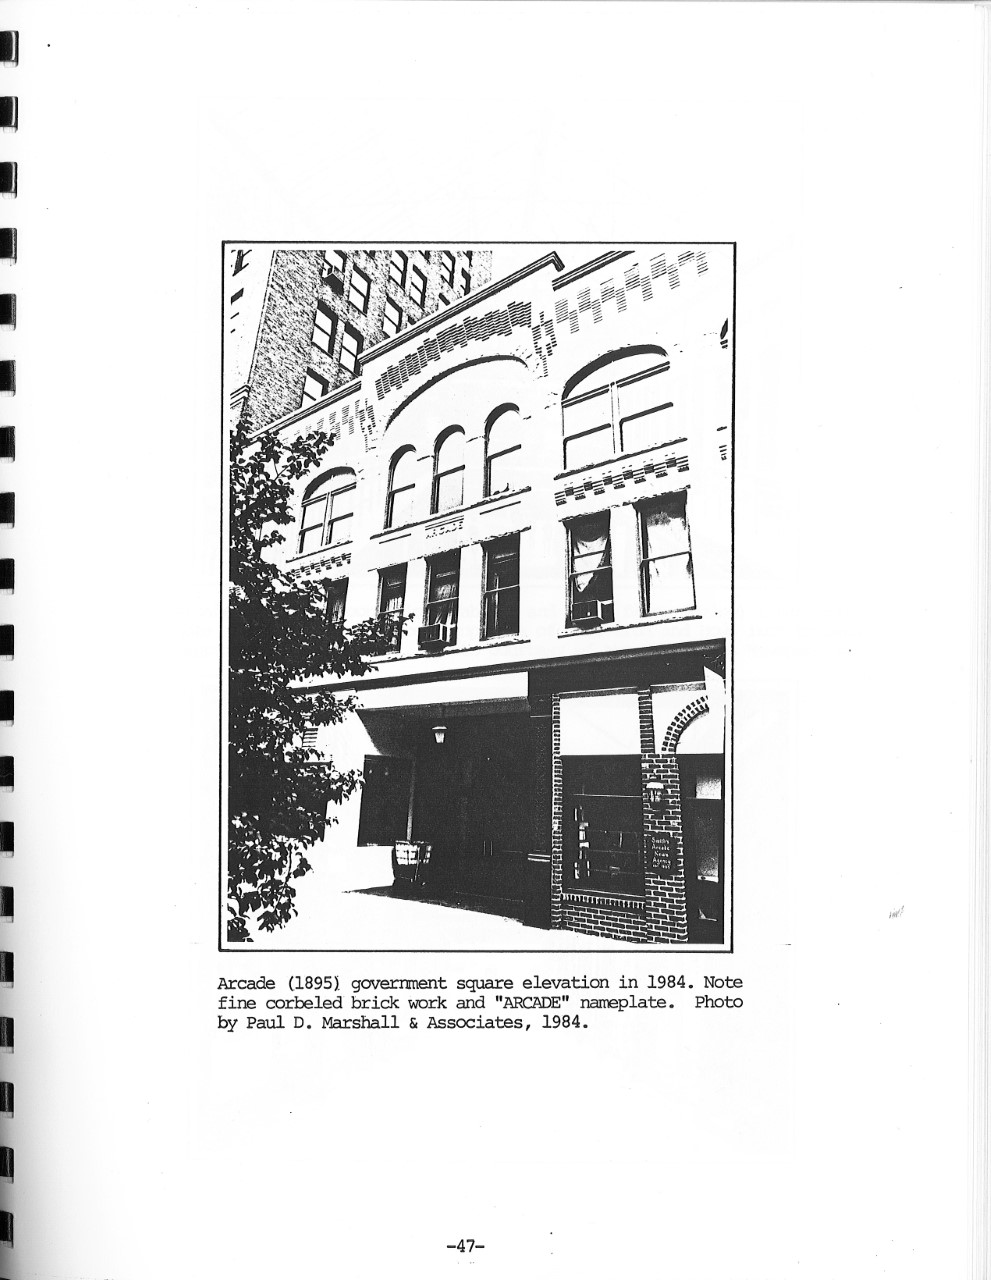 The exterior of the Arcade. A survey of the building was conducted by Paul D. Marshall in 1984.